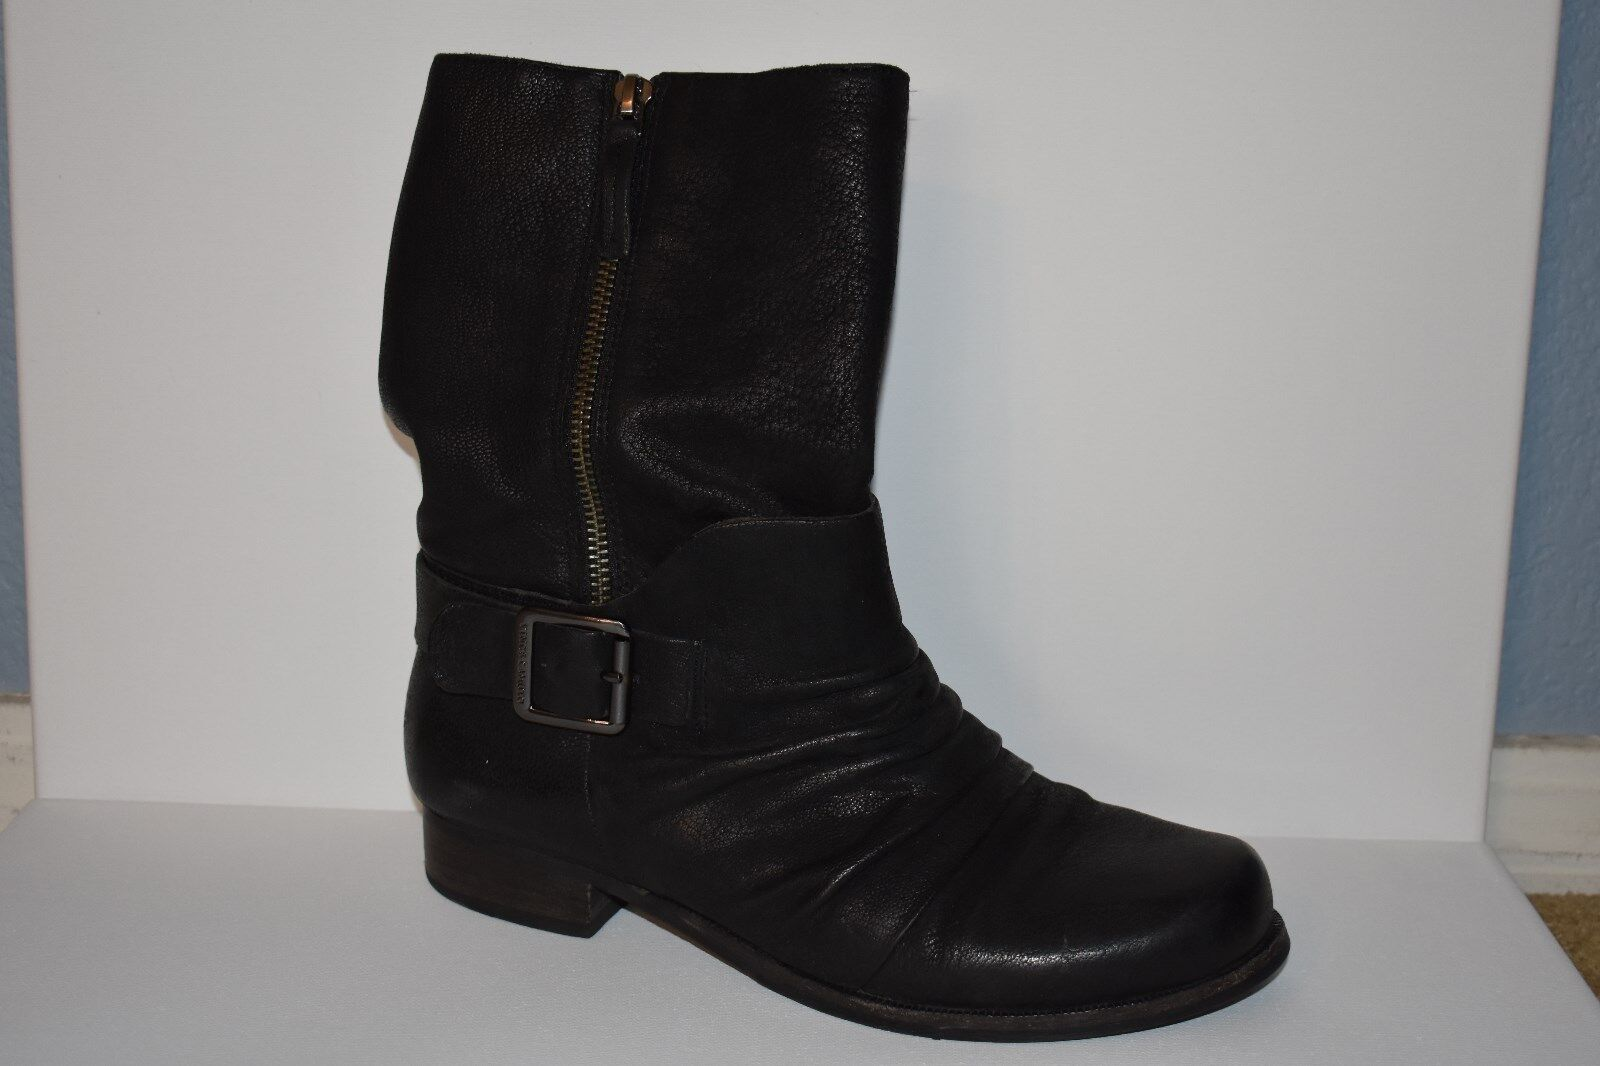 Womens Size 7 Black Boots Vince Camuto